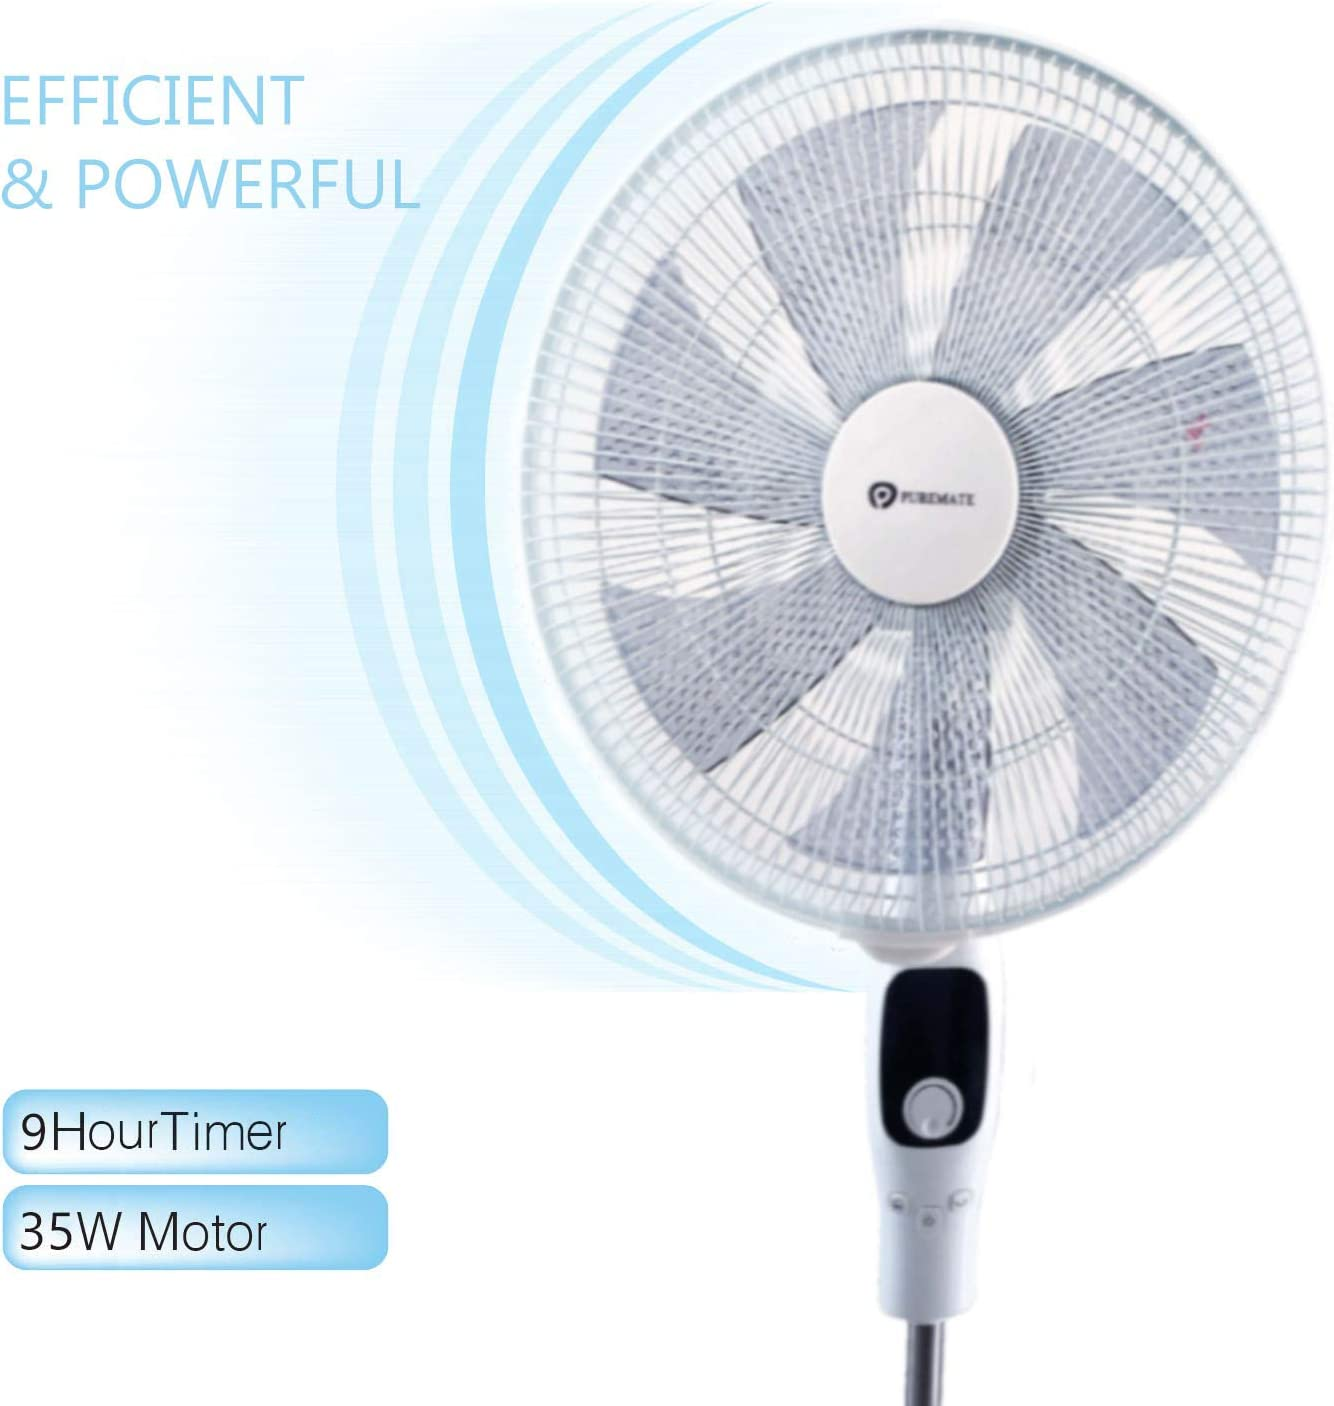 15 Speed Settings Stand fan with Adjustable Height-16 inch Oscillating fan and Remote Control 35 Watts DC Motor PureMate Pedestal Fan with 7 Blades